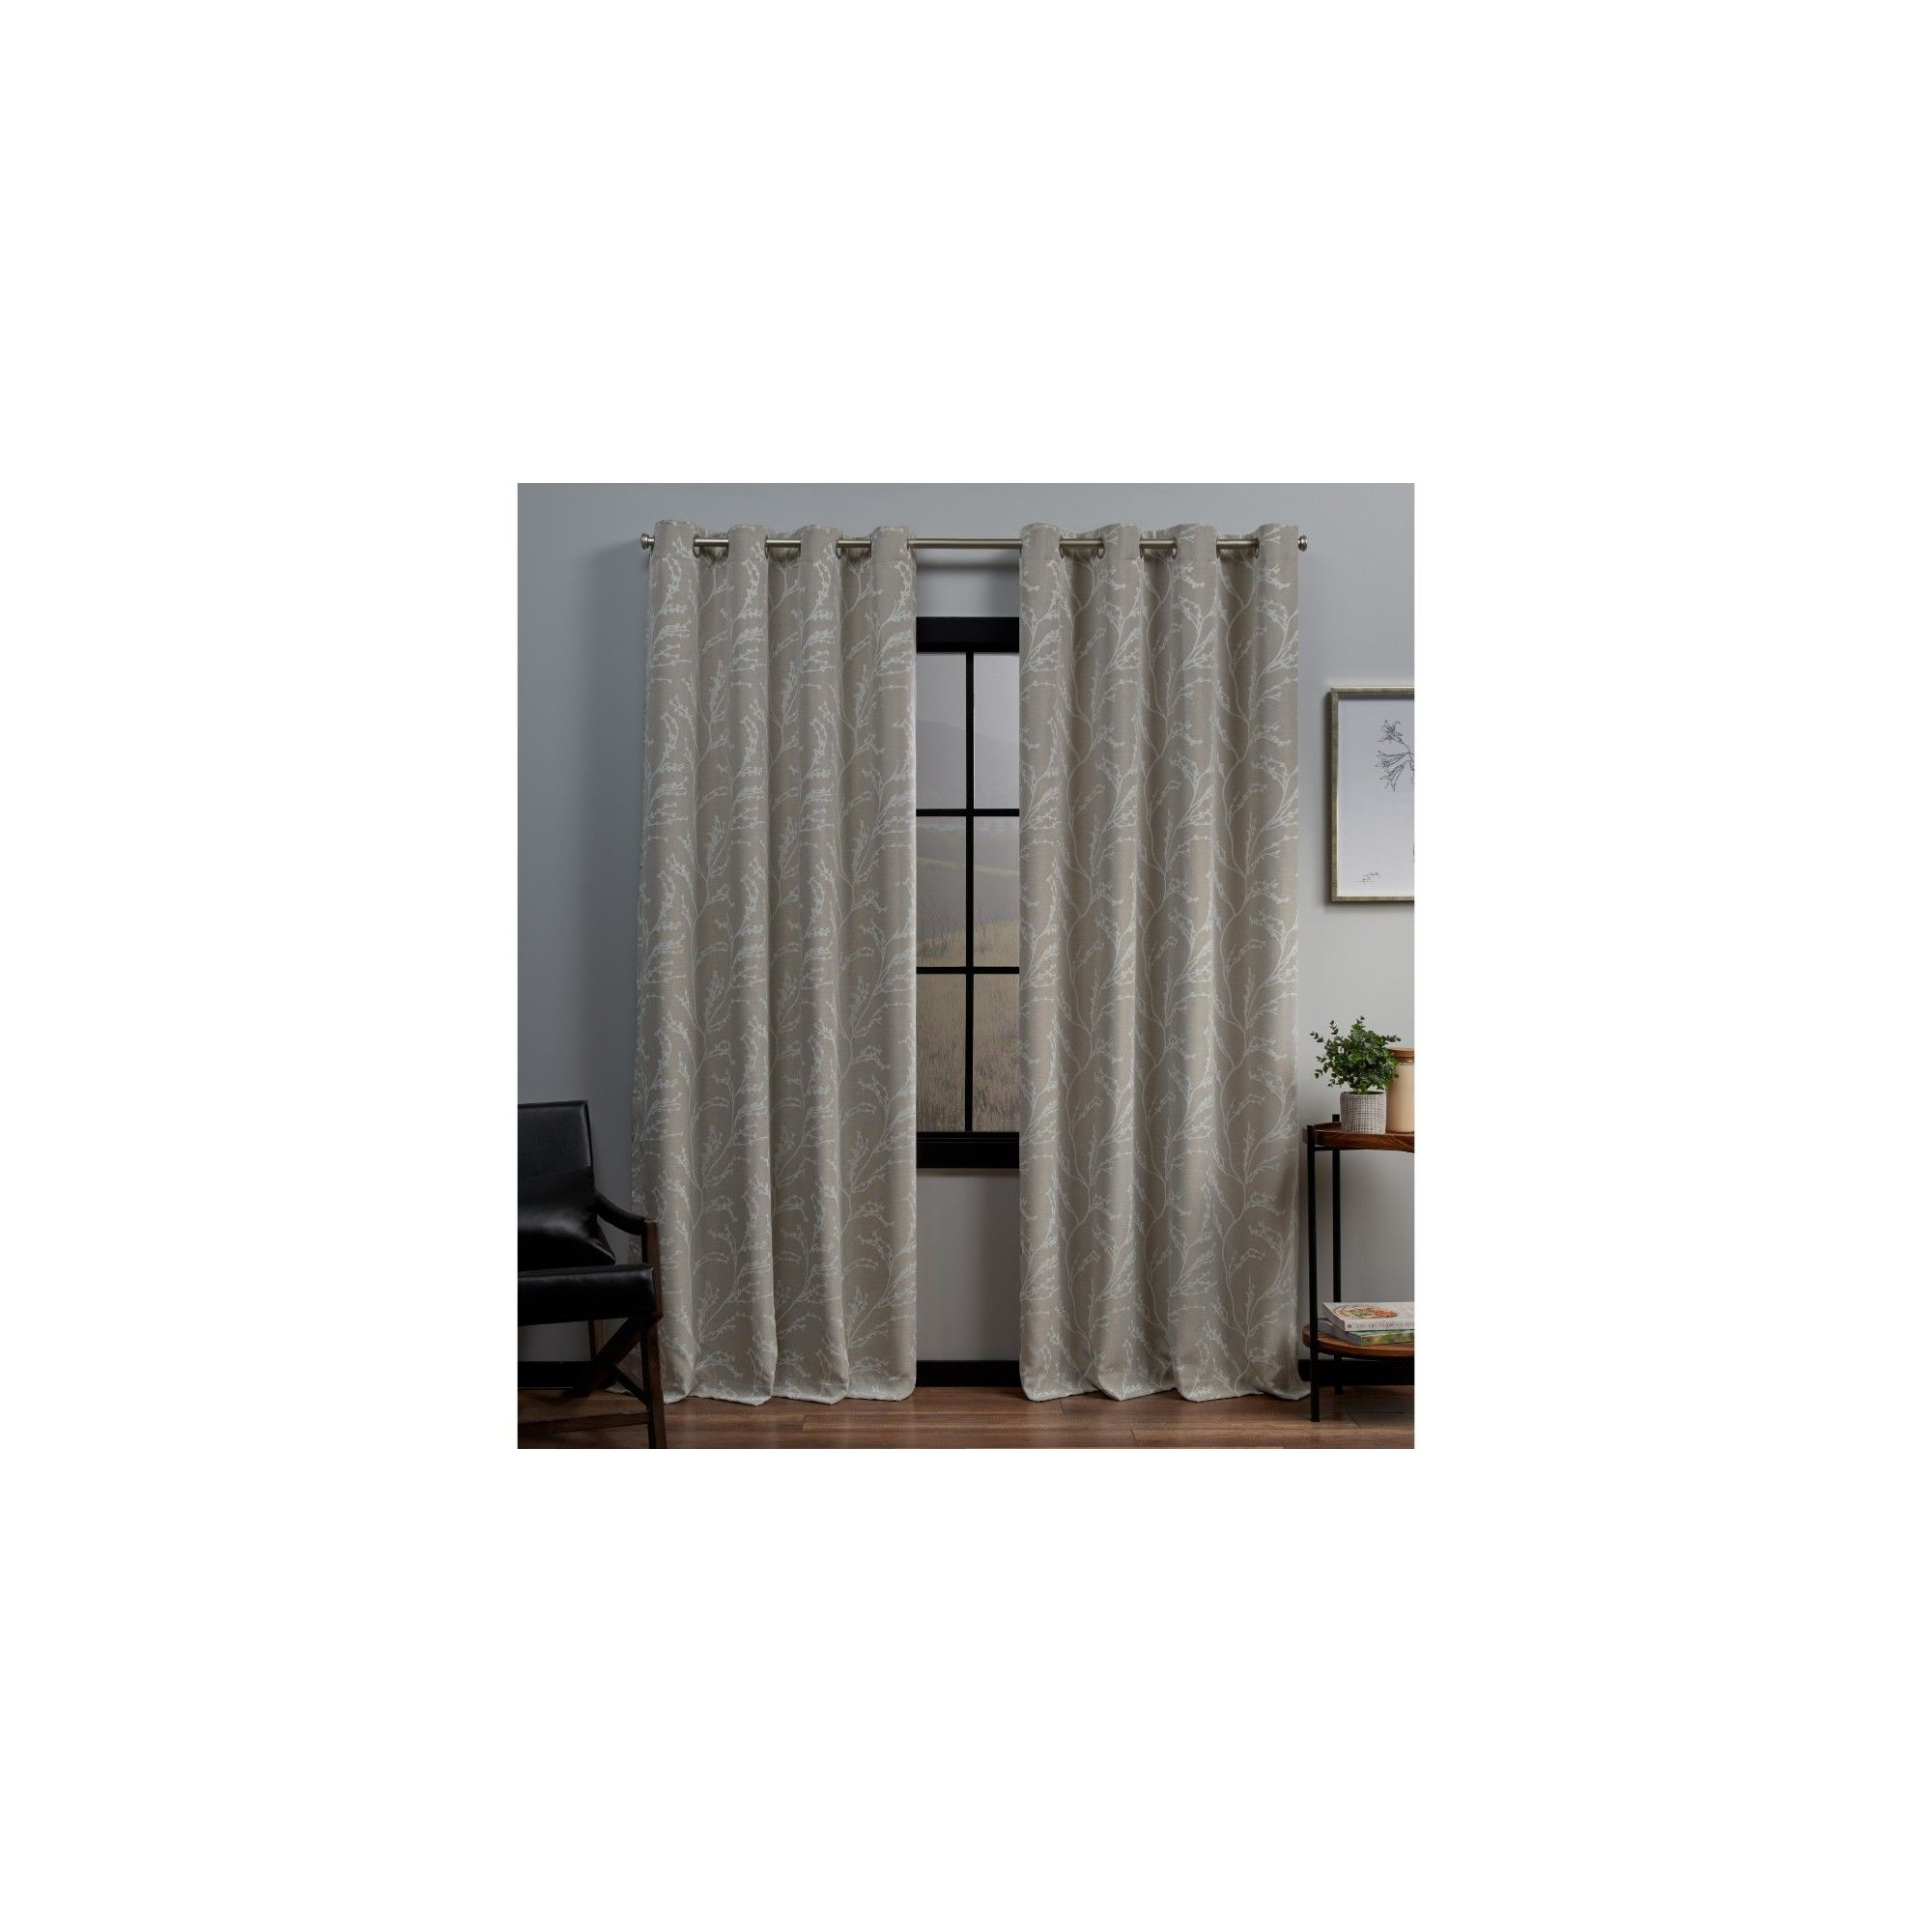 """Woven Blackout Curtain Panel Pairs With Grommet Top Within Preferred 52""""x63"""" Kilberry Woven Blackout Grommet Top Window Curtain (View 19 of 20)"""